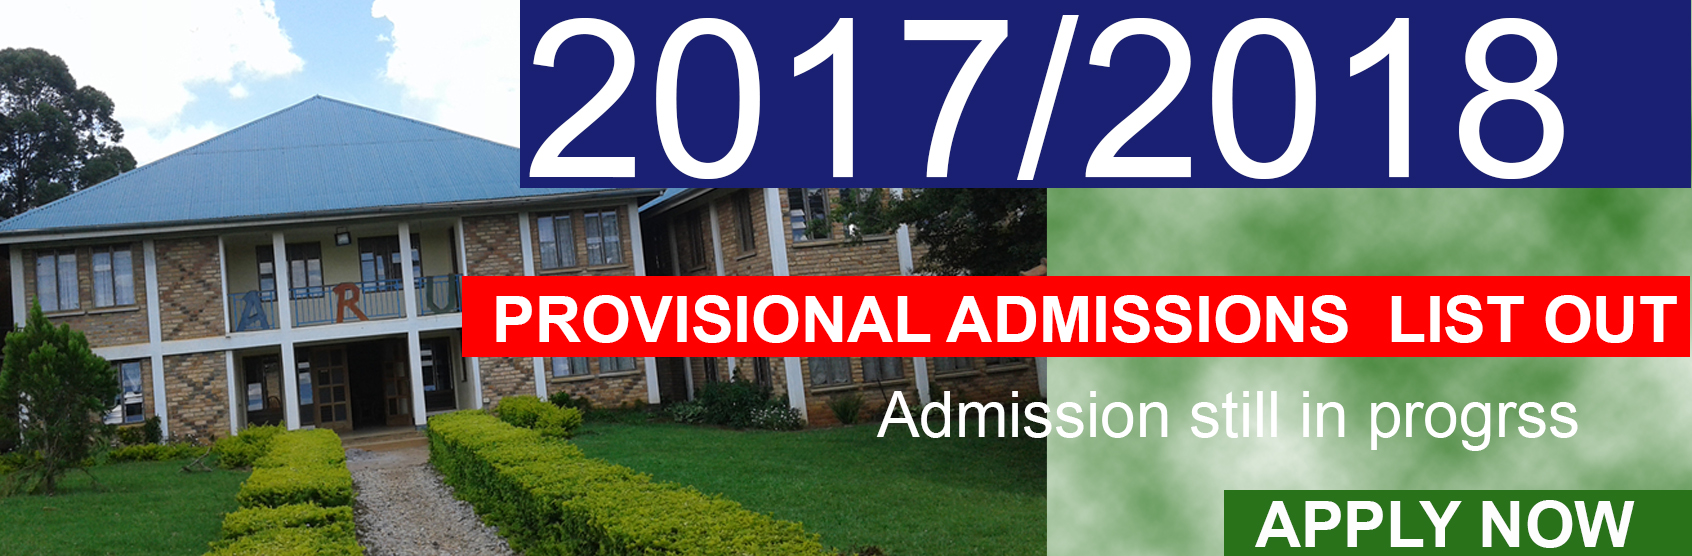 2017-2018_provisional_admissions_list